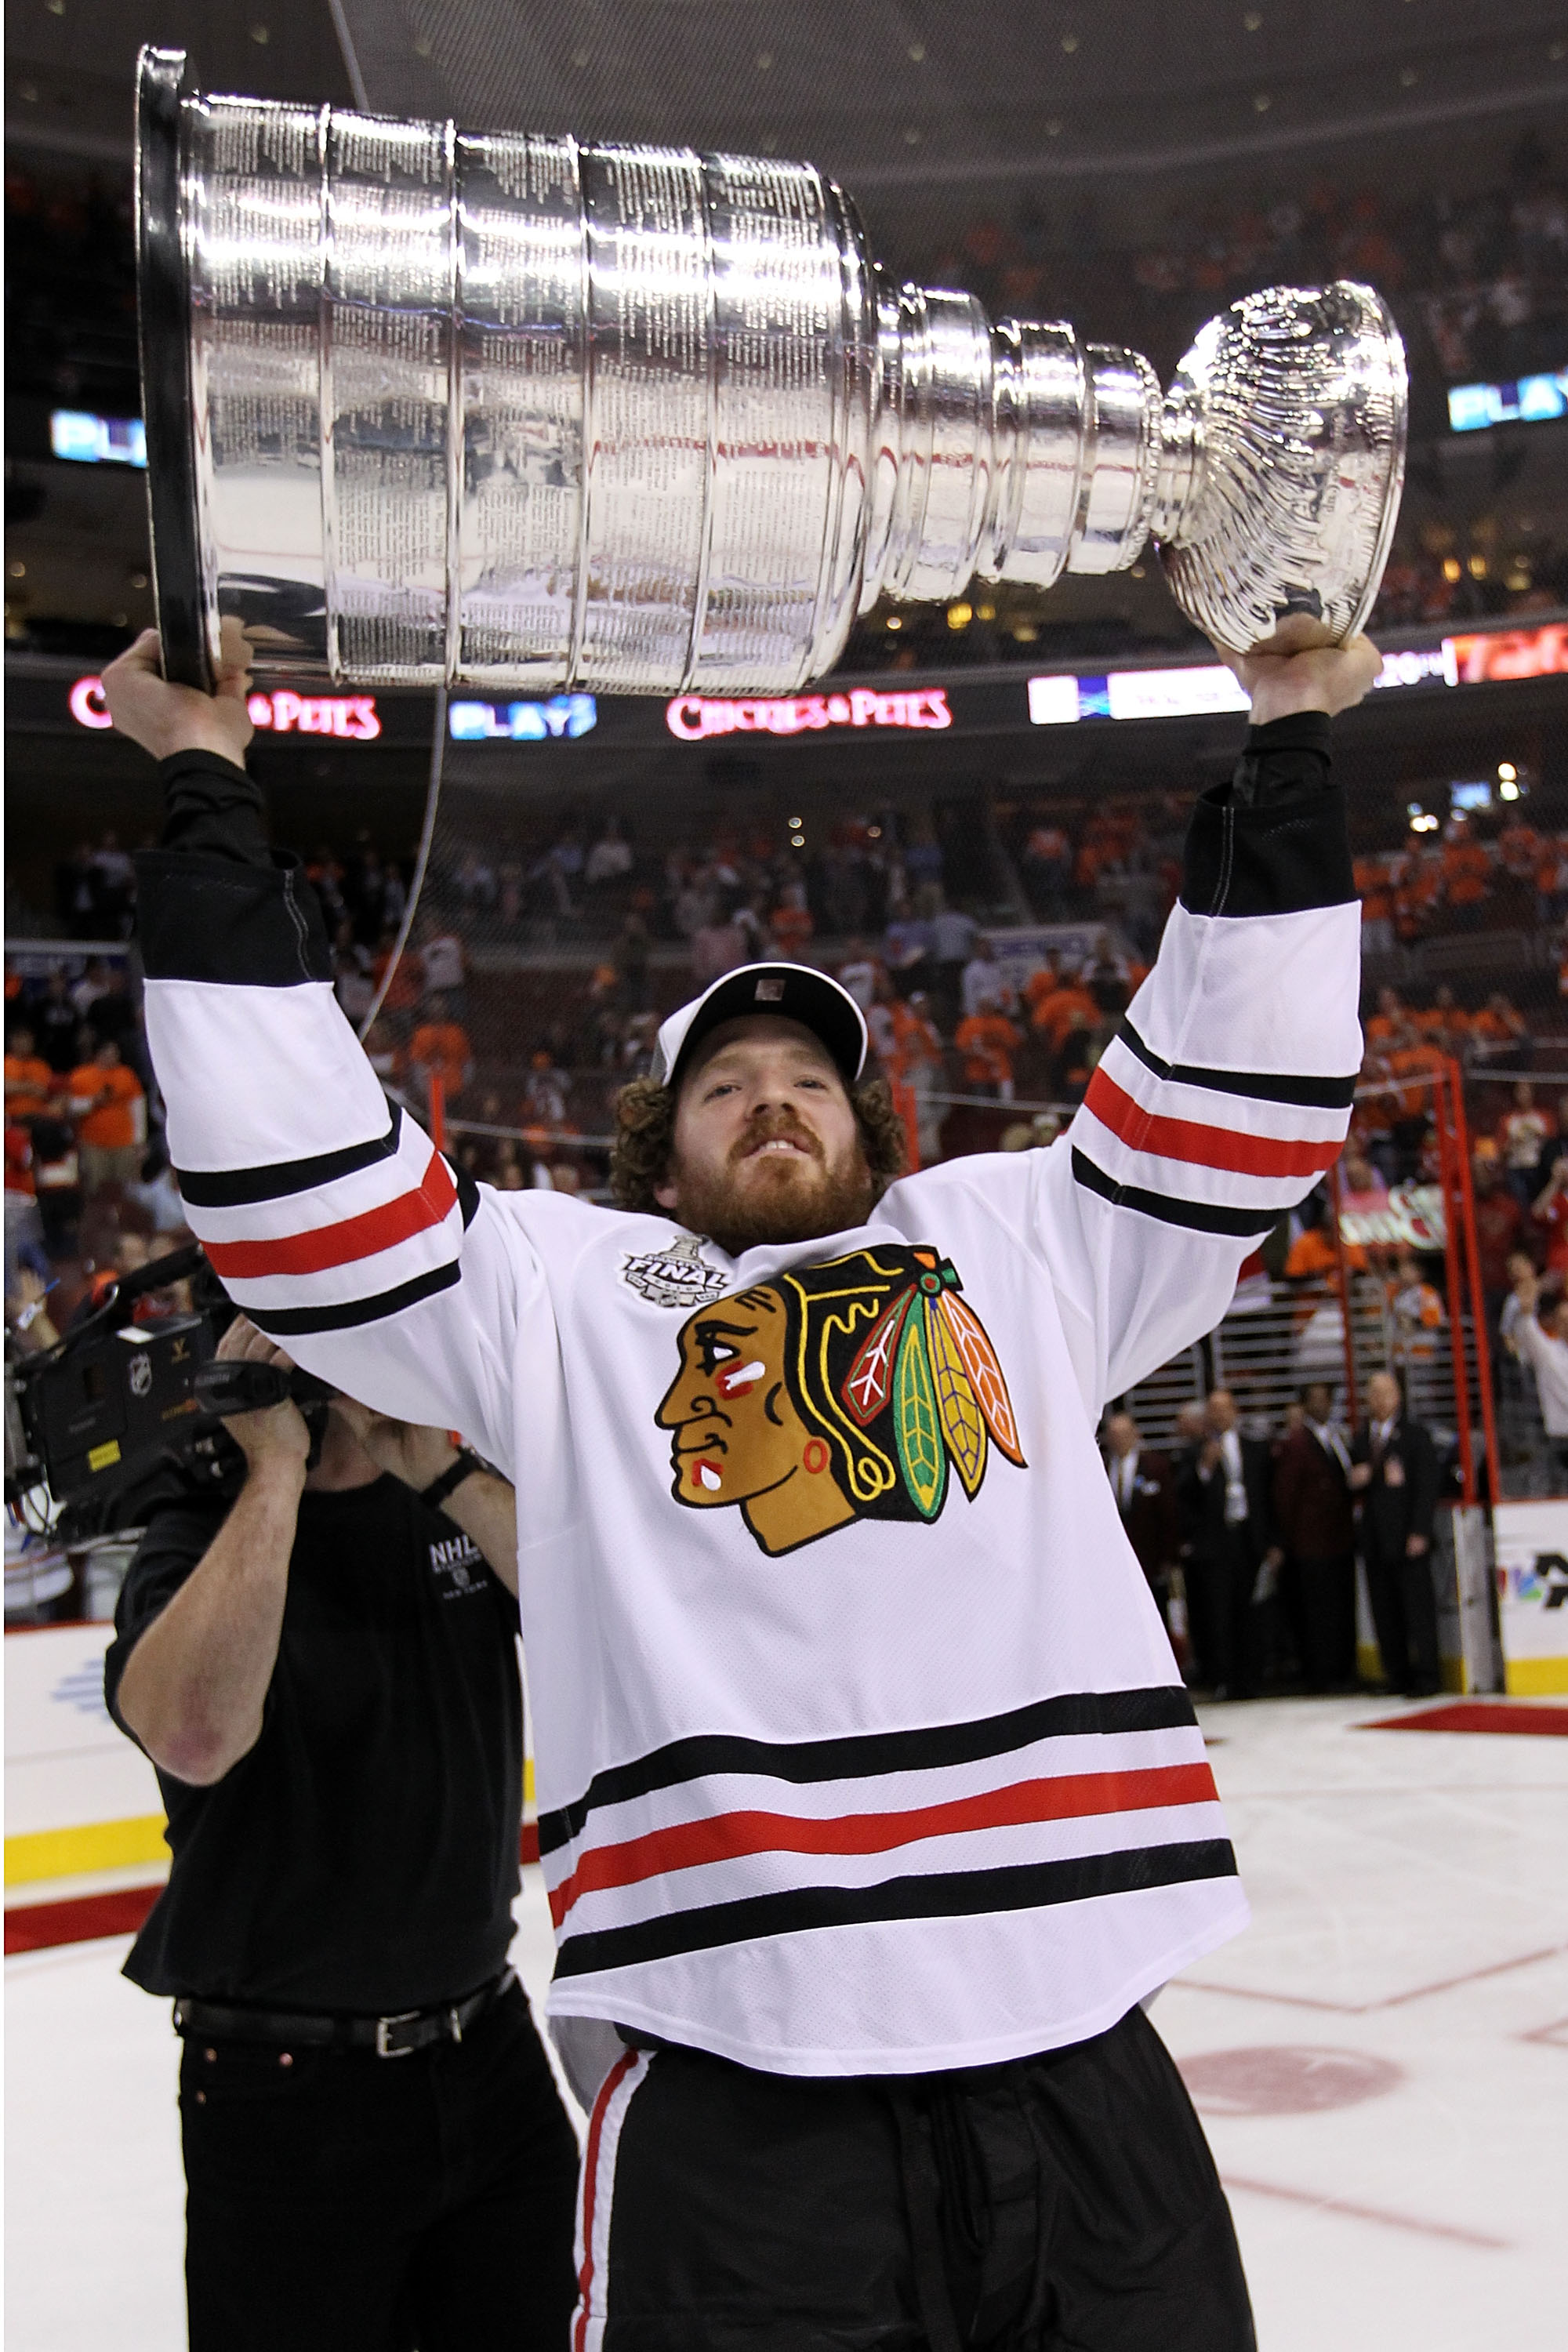 PHILADELPHIA - JUNE 09:  Colin Fraser #46 of the Chicago Blackhawks hoists the Stanley Cup after teammate Patrick Kane #88 scored the game-winning goal in overtime to defeat the Philadelphia Flyers 4-3 and win the Stanley Cup in Game Six of the 2010 NHL S